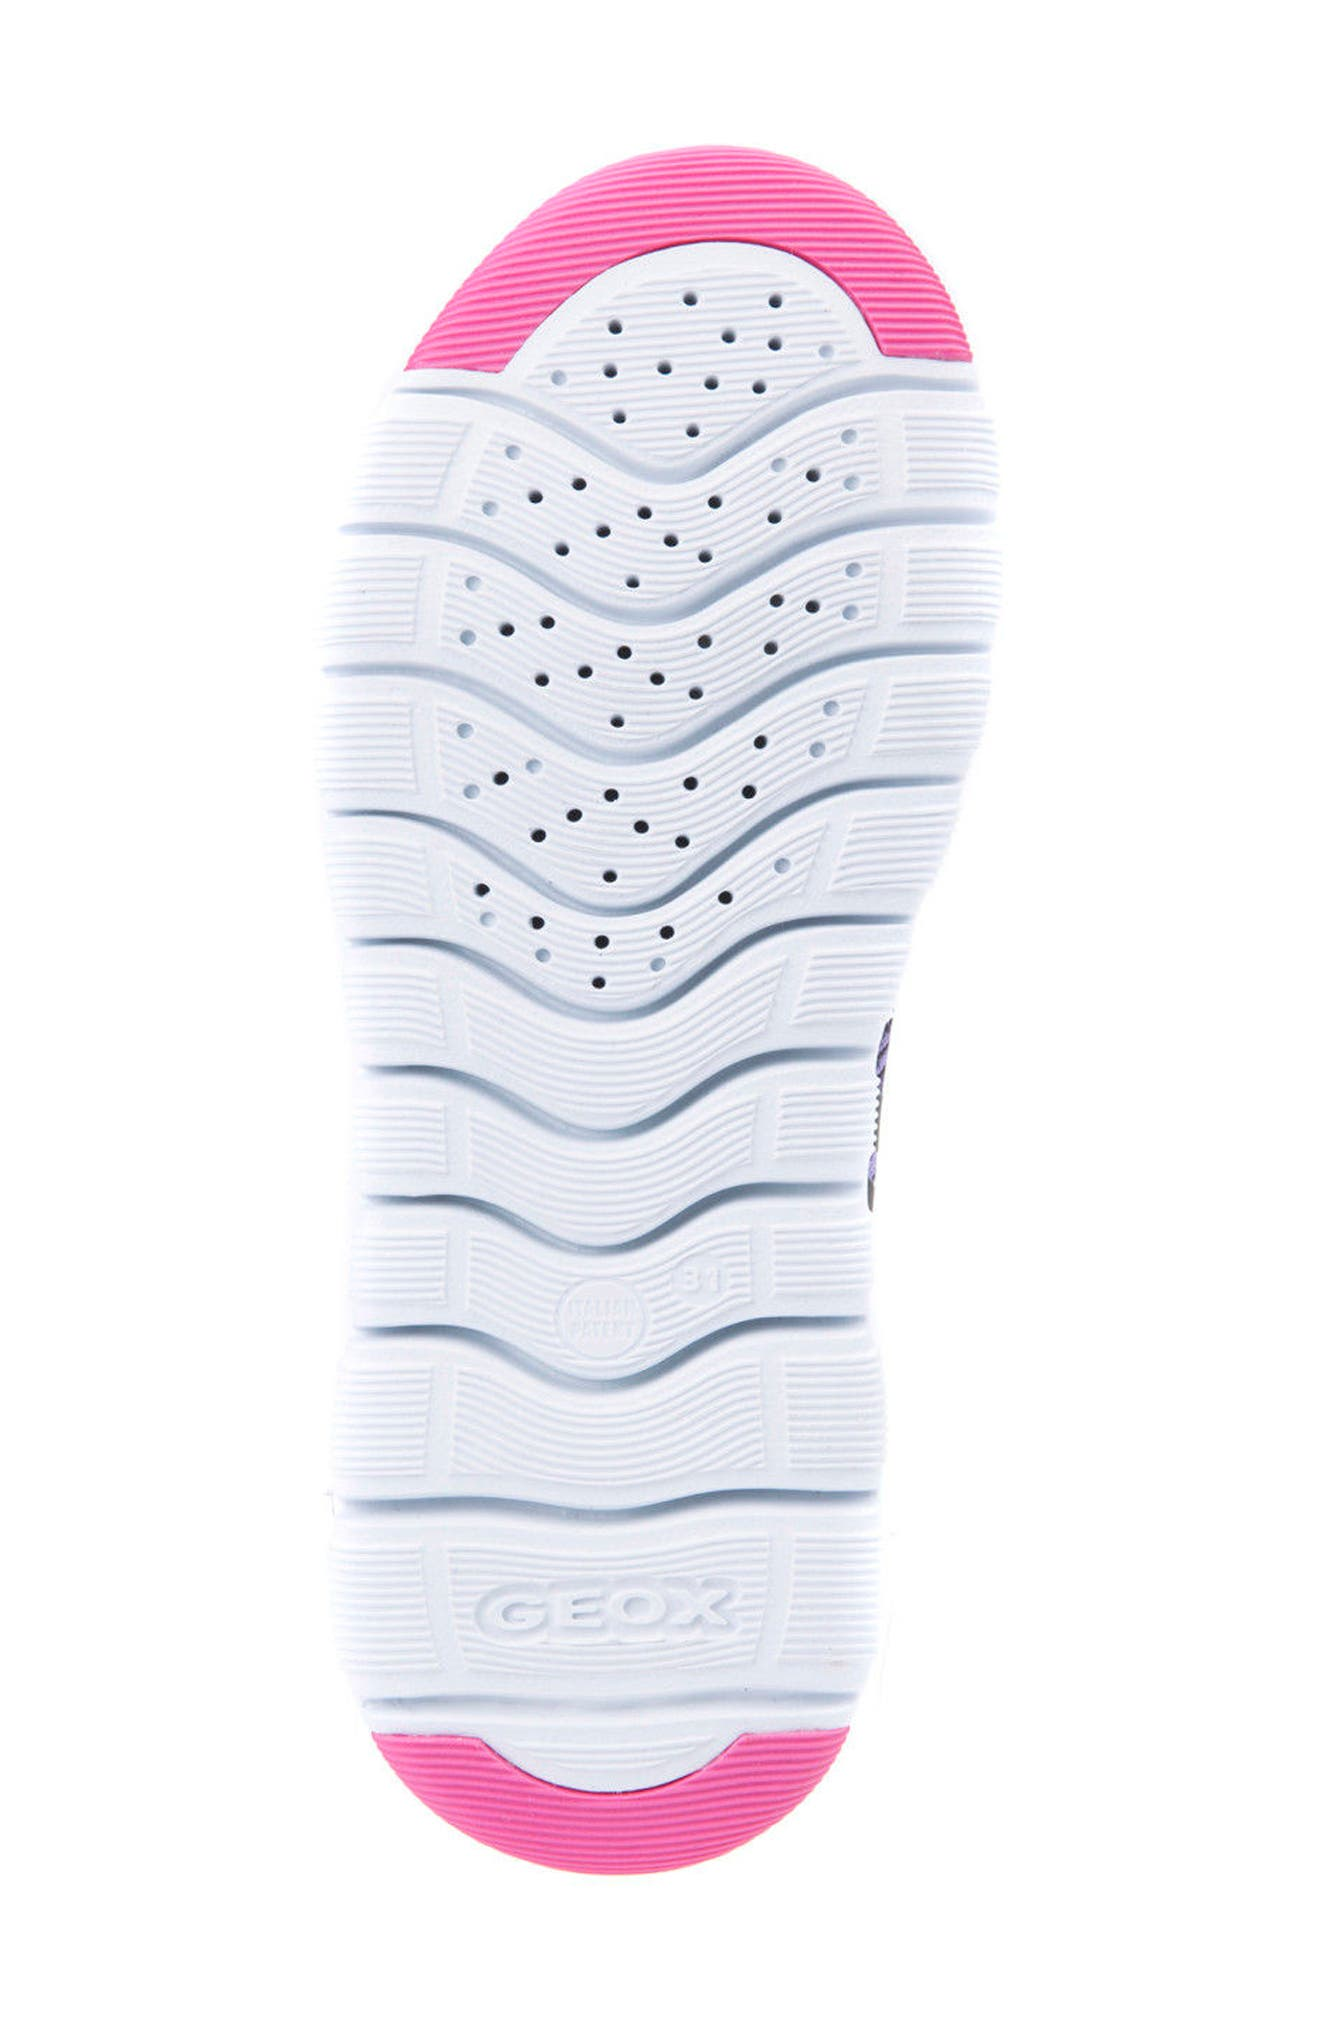 Xunday Performance Knit Low Top Sneaker,                             Alternate thumbnail 6, color,                             Lilac